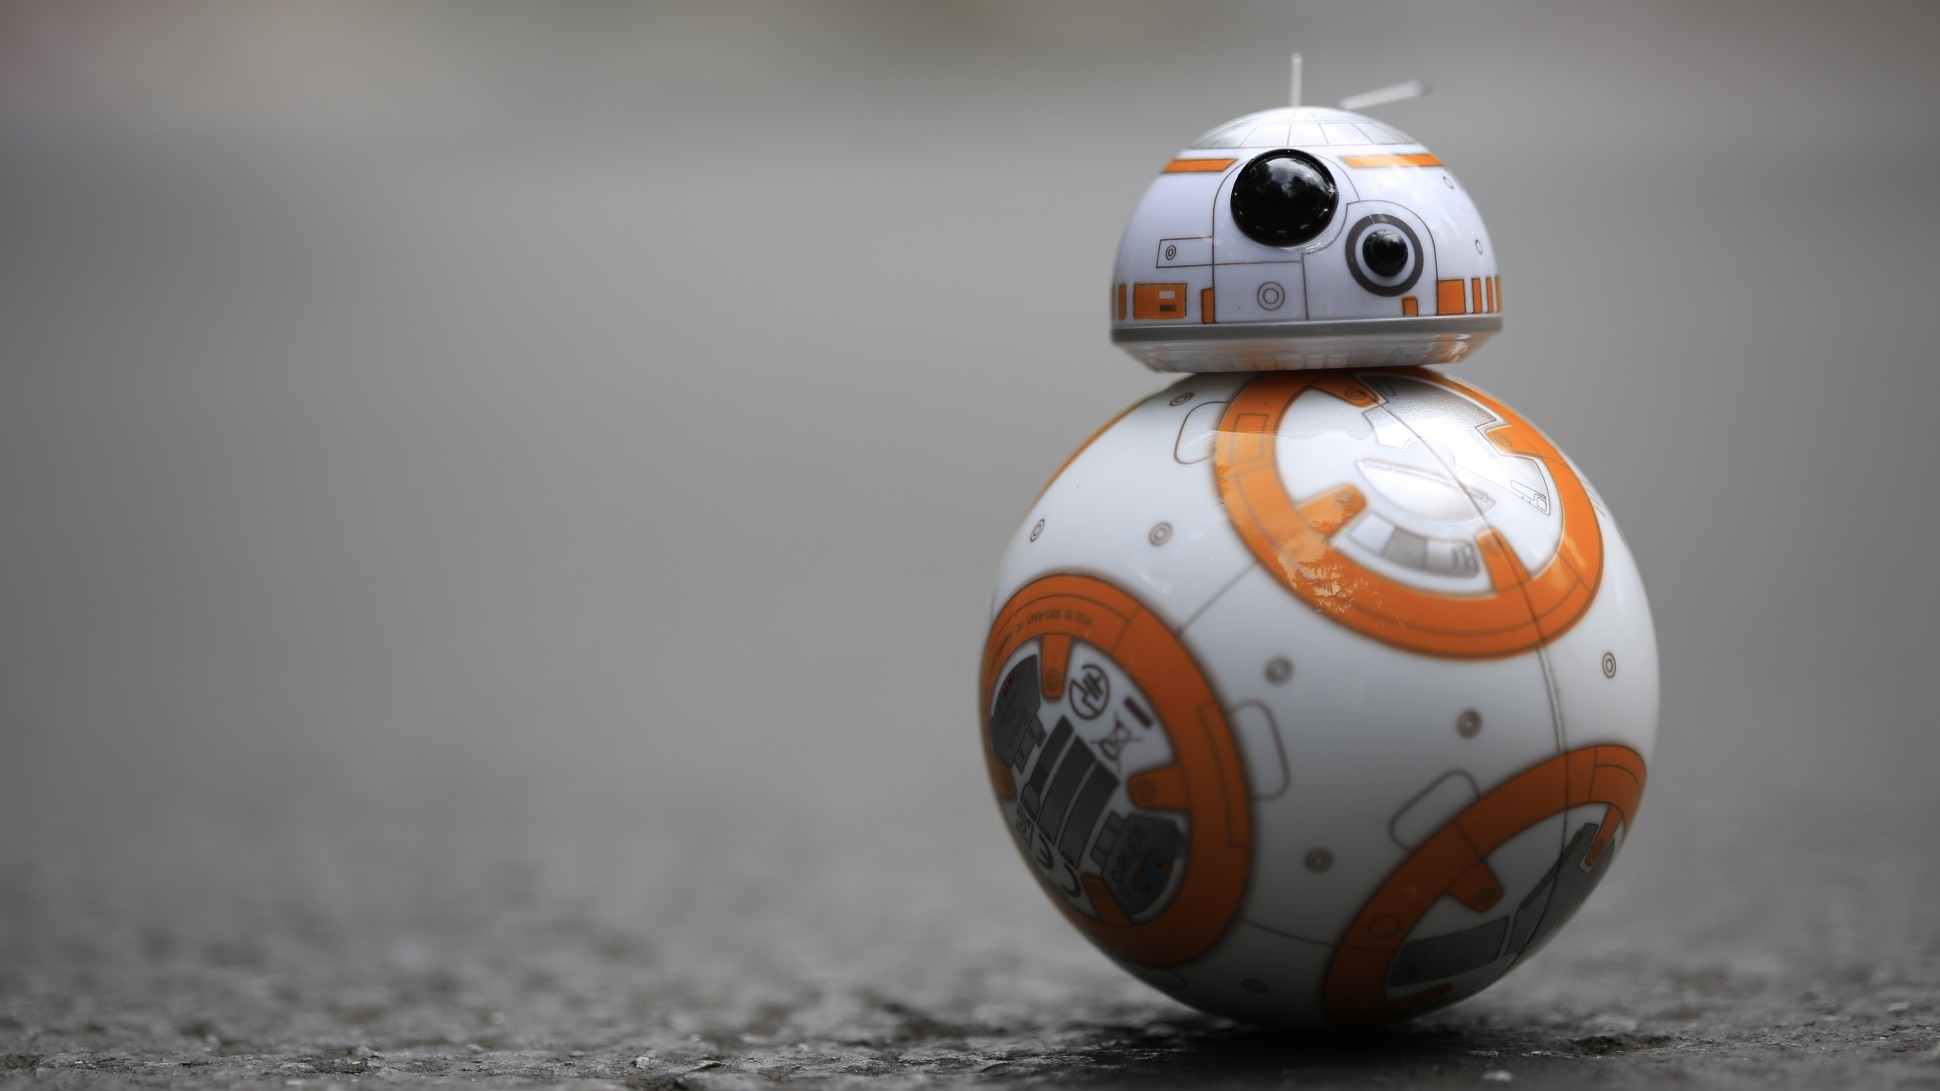 72 Bb 8 Wallpapers on WallpaperPlay 1940x1091